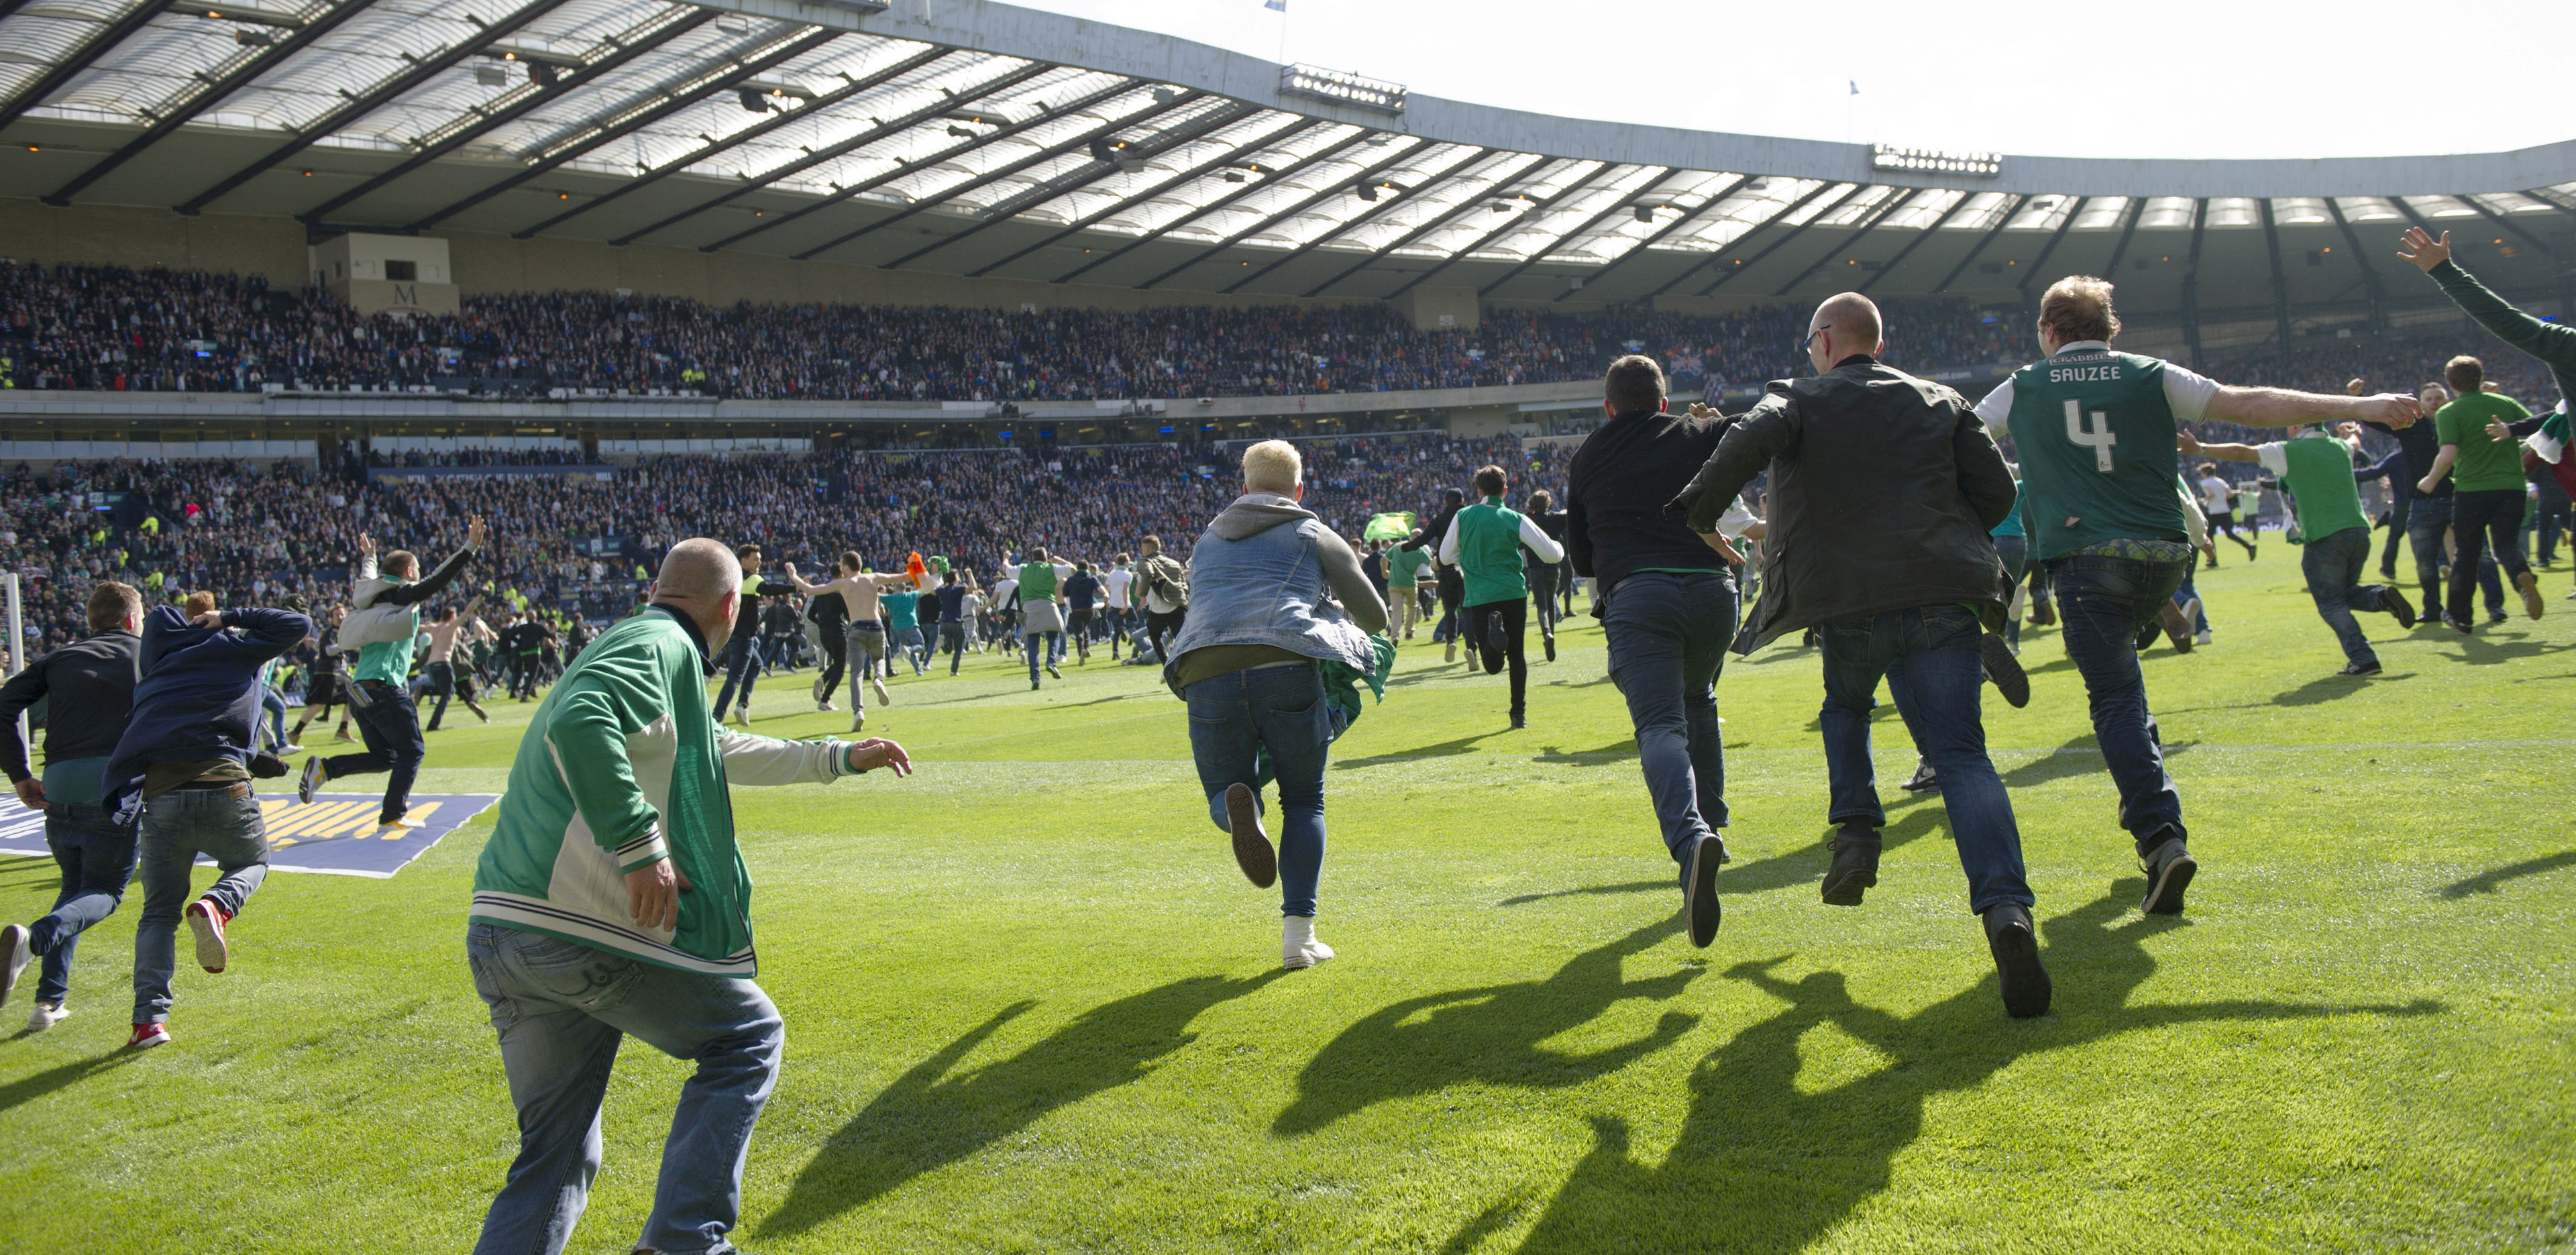 Hibernian fans rush the pitch after their side's win in the Scottish Cup final.